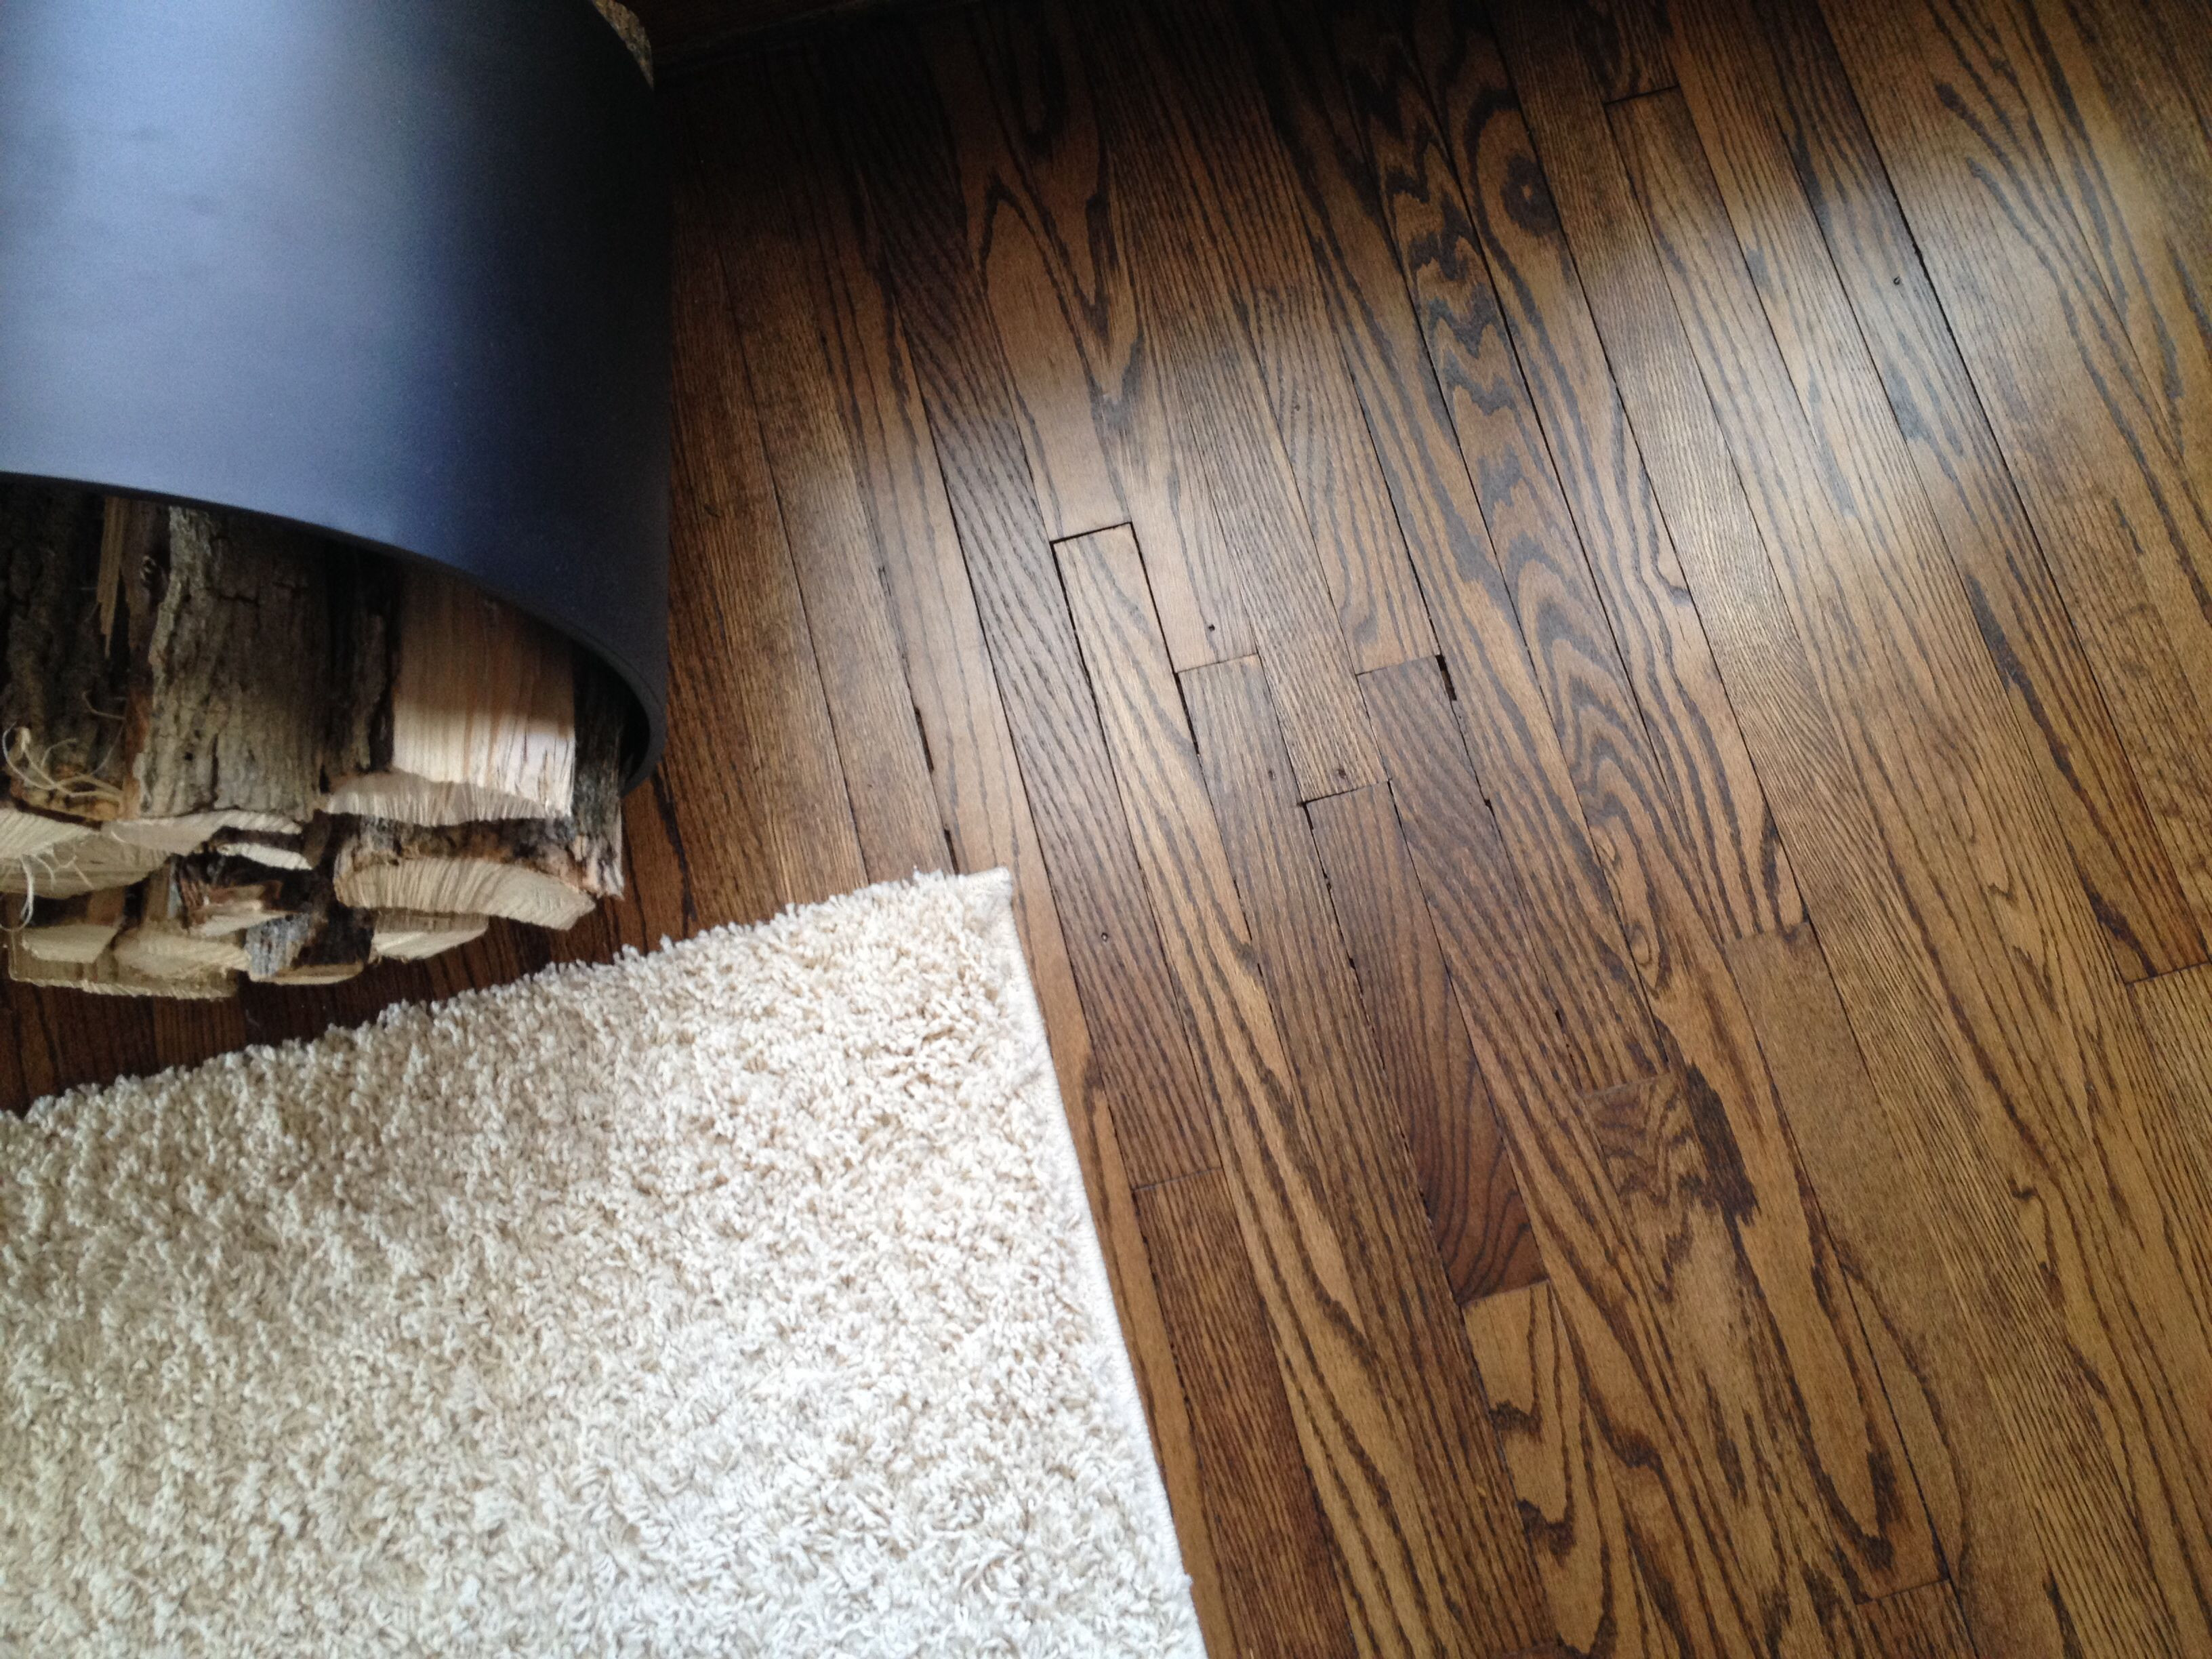 hardwood floor refinishing cost boston of how to stain a floor 50 inspirational hardwood floor scrubber 50 s regarding how to stain a floor 113 year old original oak floors refinished in espresso stain